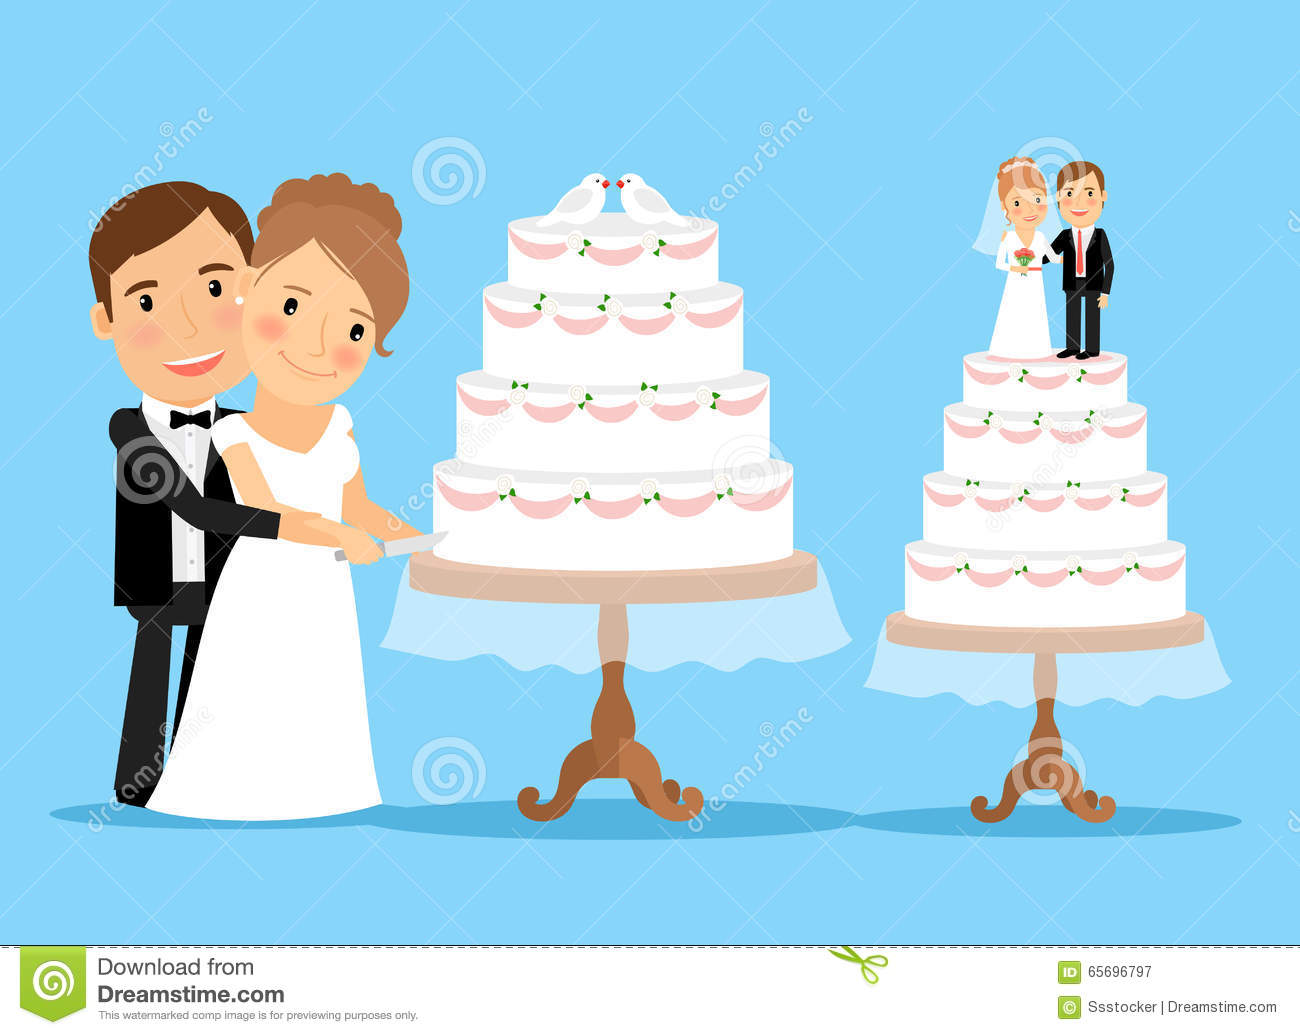 Wedding Cake With Bride And Groom Stock Vector - Image ...